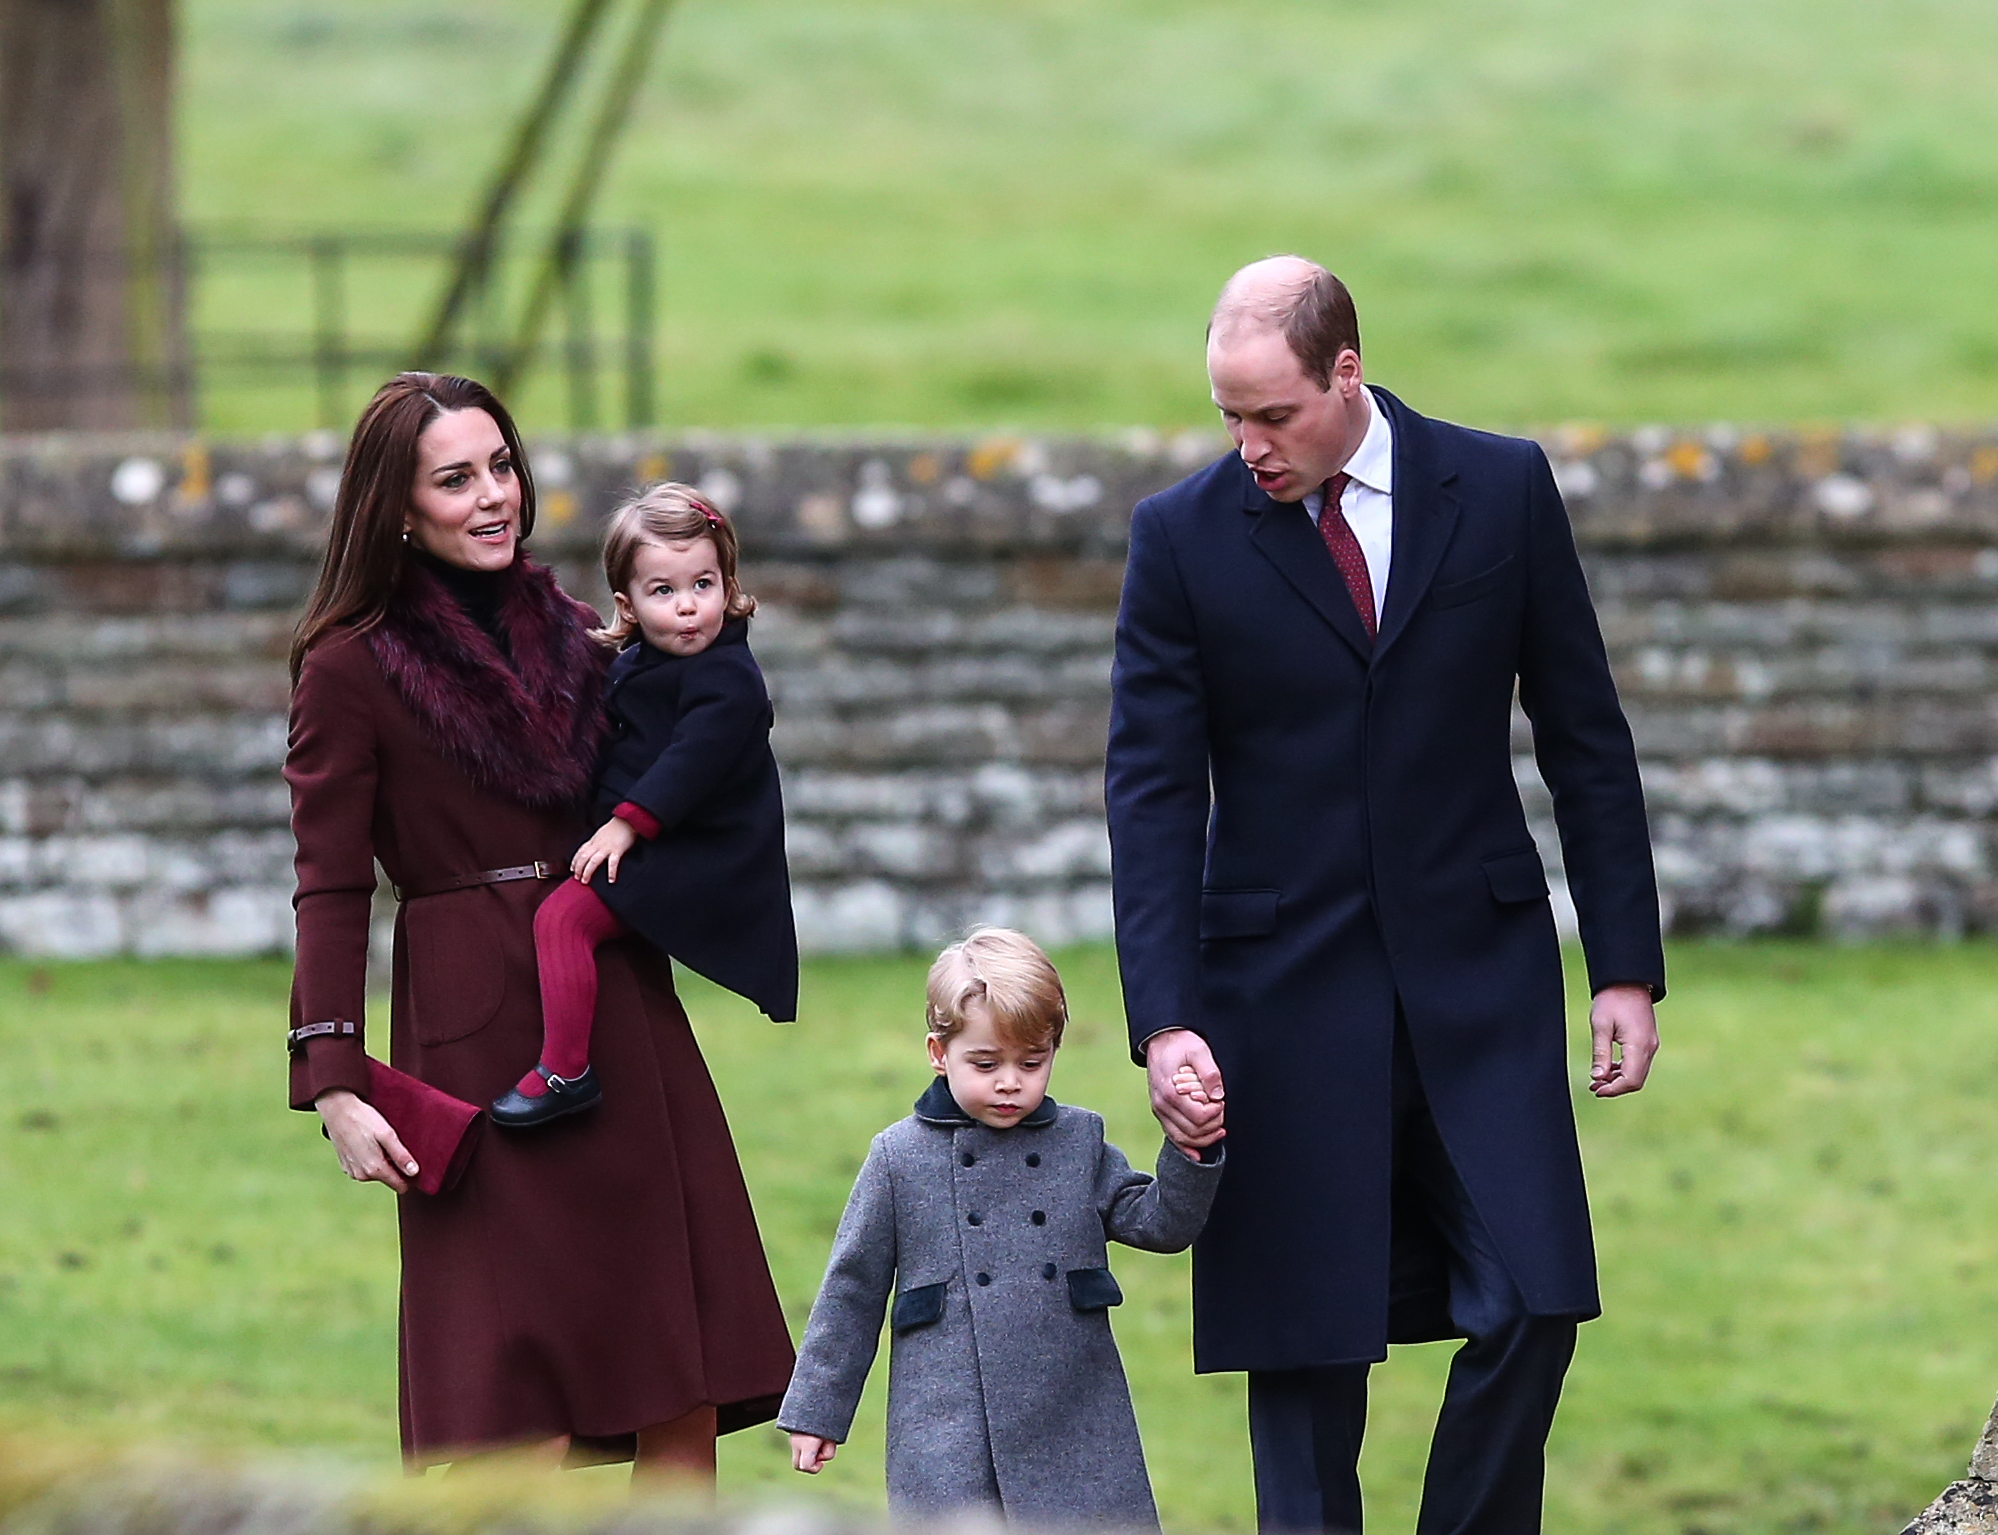 The Duke and Duchess of Cambridge arrive at St Marks Englefield with Prince George and Princess Charlotte. The family were also accompanied by Michael and Carol Middleton, James Middleton, Pippa Middleton and her fiance James Matthews. Featuring: Prince William, Duke of Cambridge, Catherine Duchess of Cambridge, Kate Middleton, Prince George, Princess Charlotte Where: Englefield, United Kingdom When: 25 Dec 2016 Credit: WENN.com